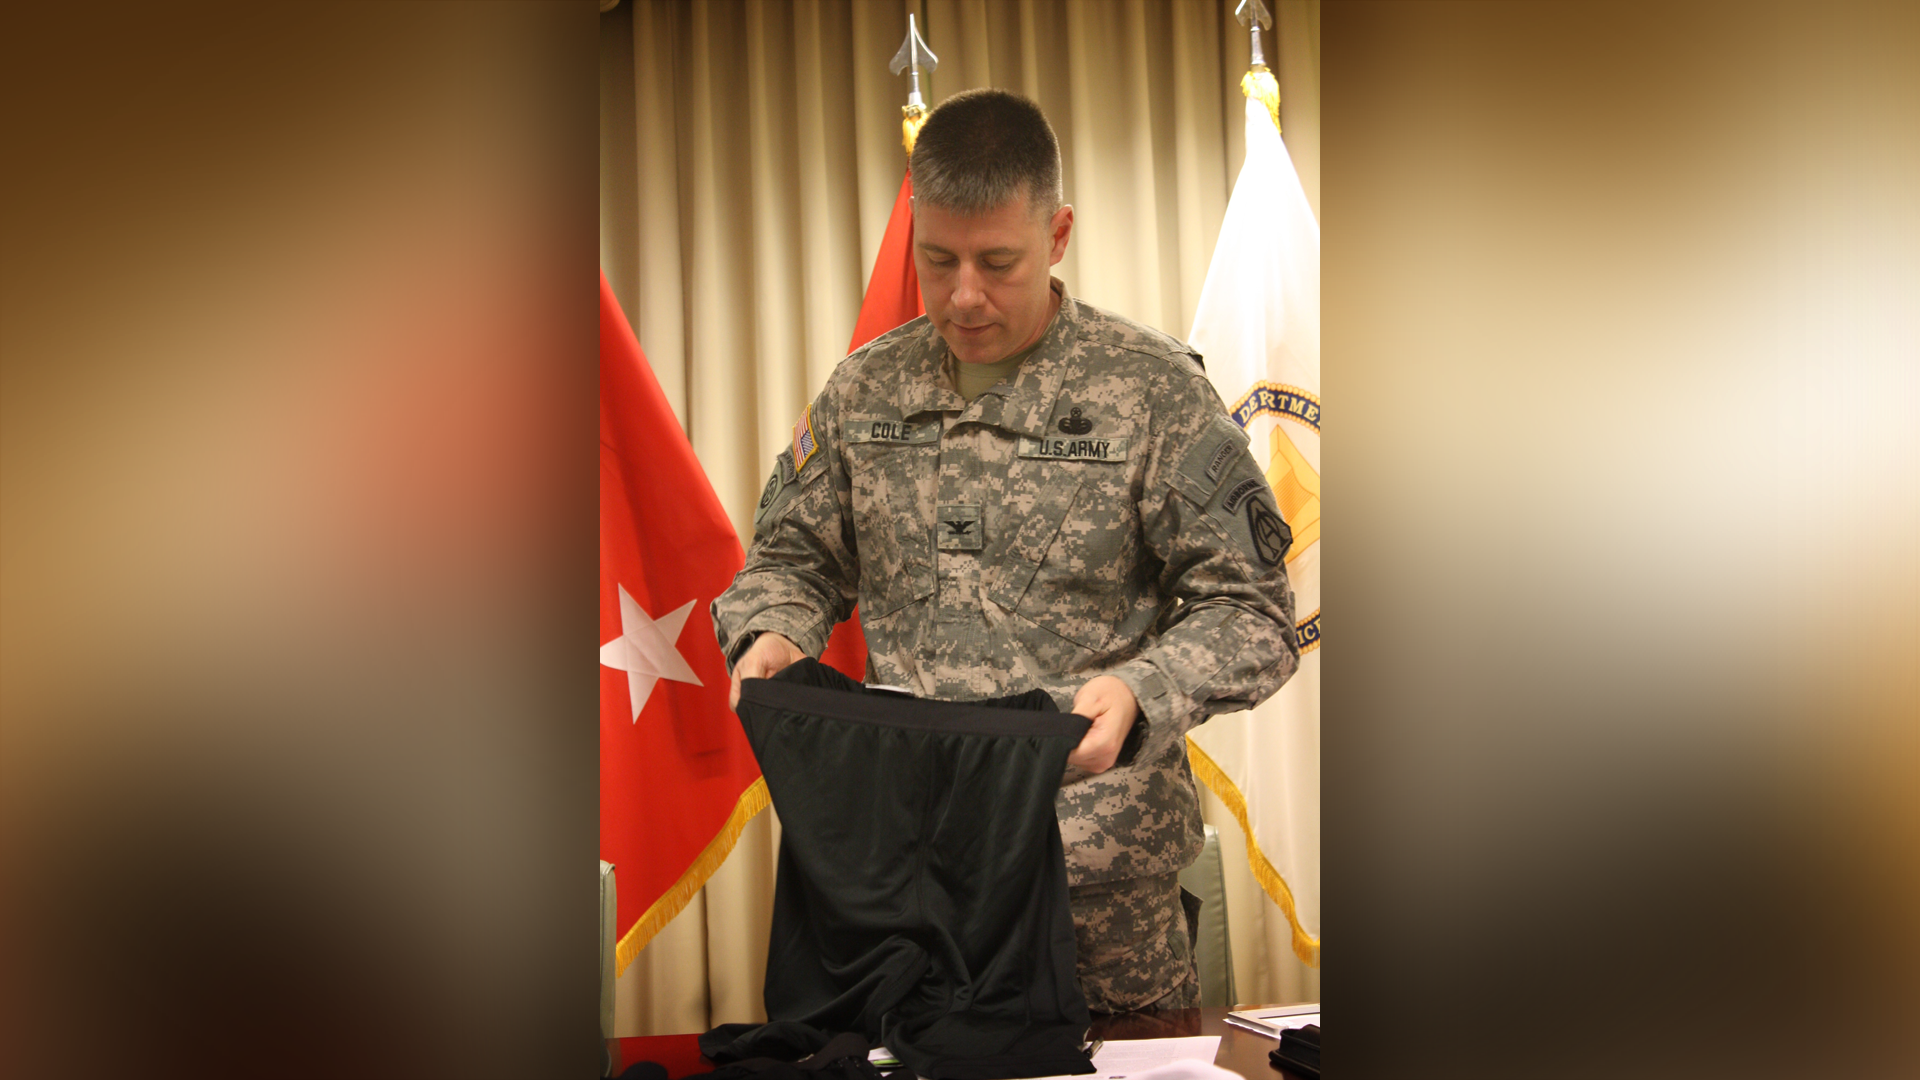 Army: ballistic boxers-yes; ballistic cups-no